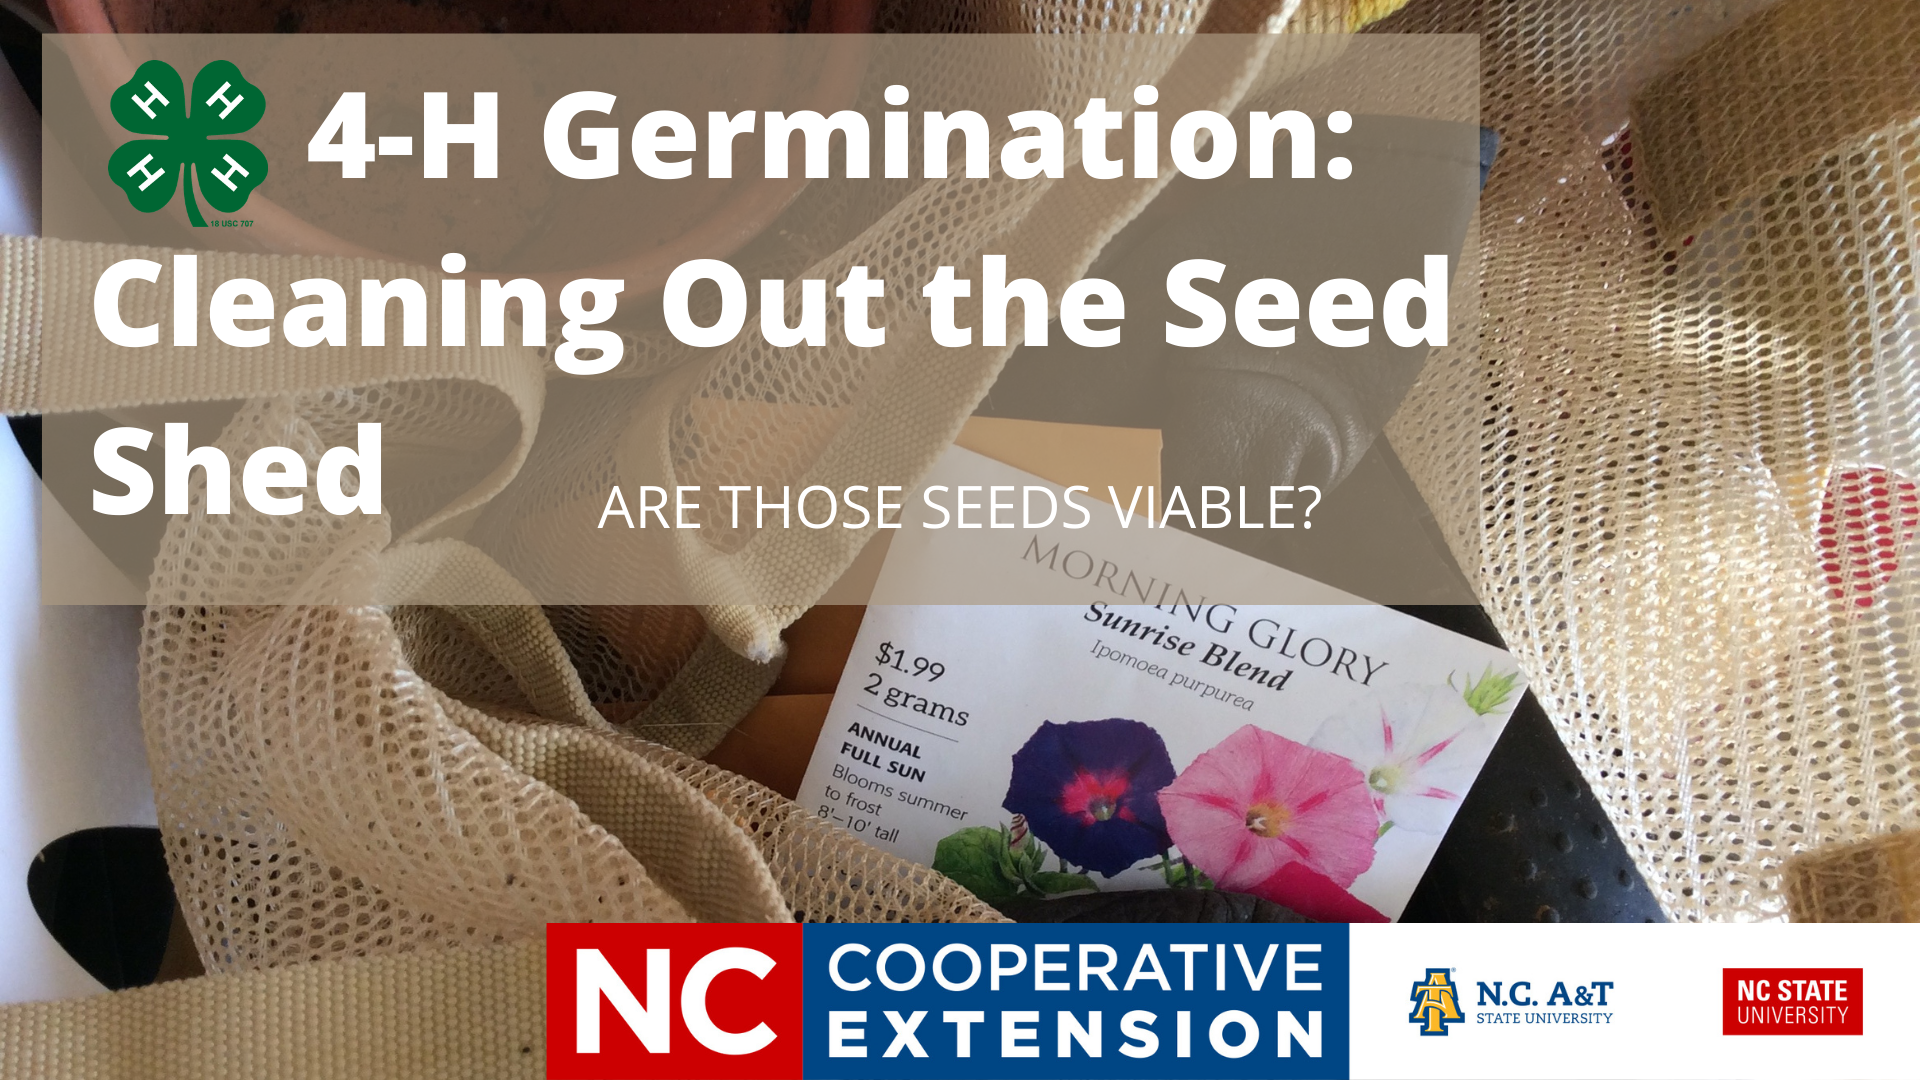 4-H germination cleaning out the seed shed are those seeds viable